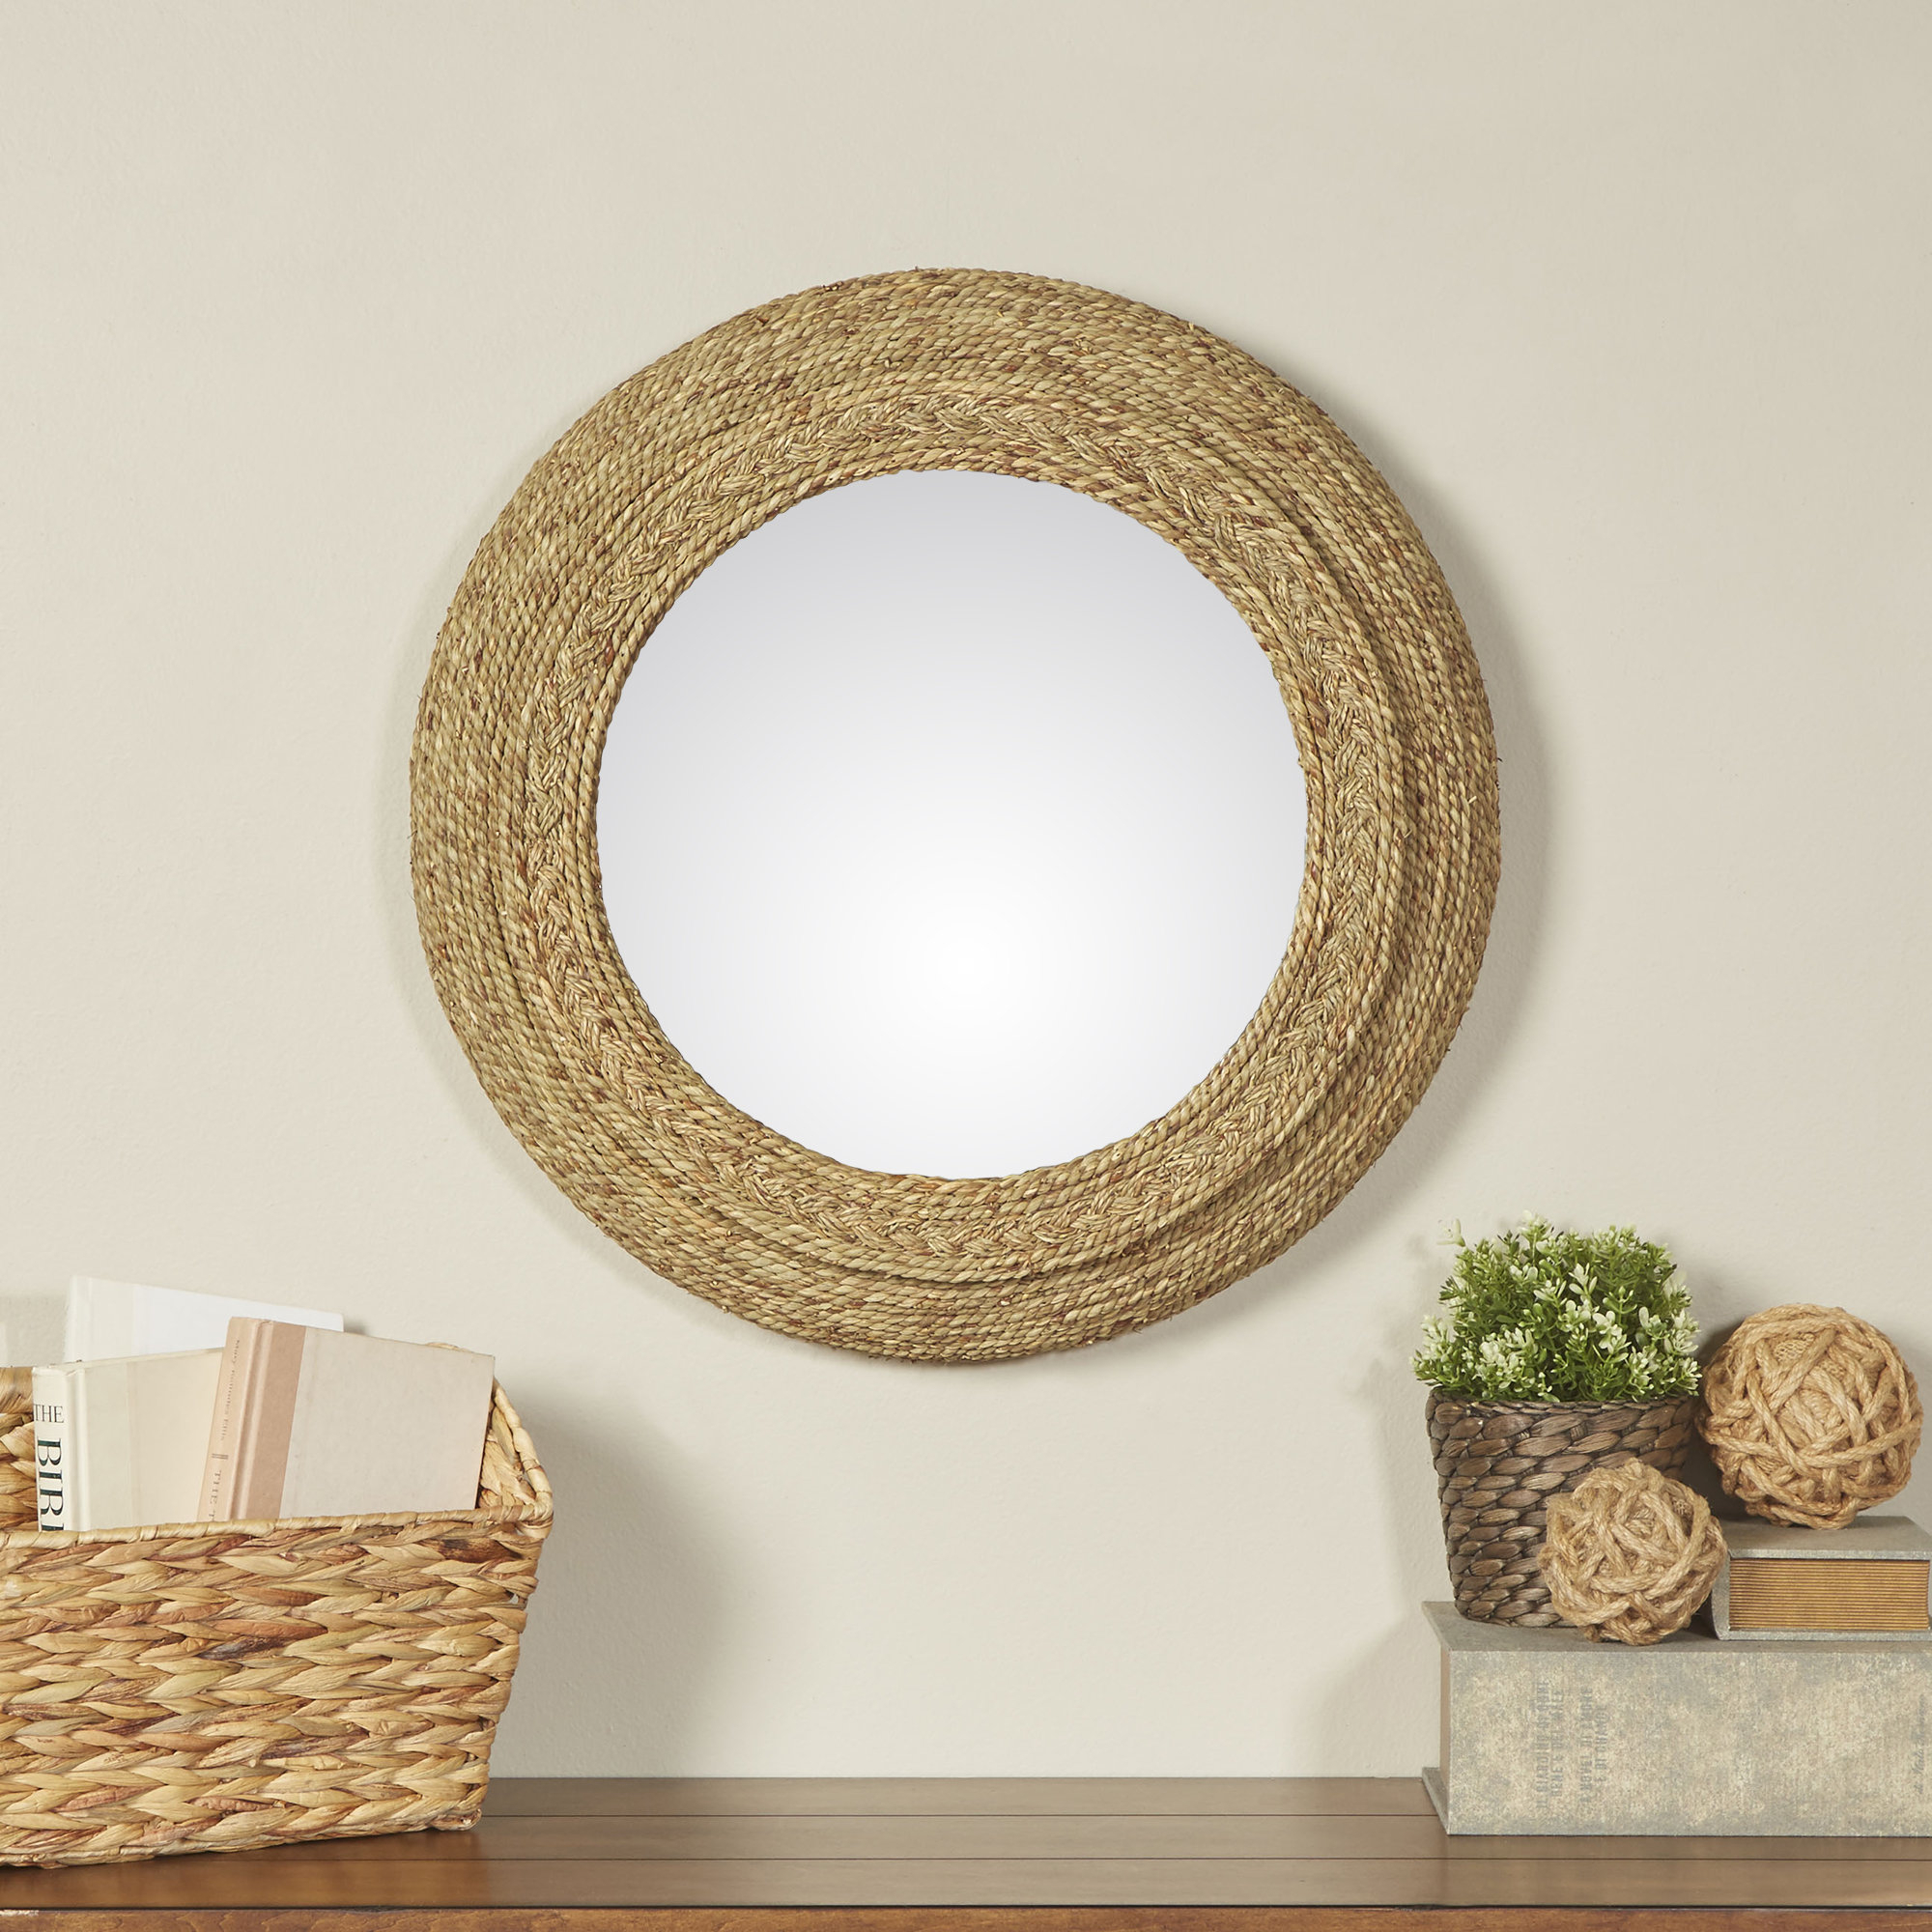 Mcentire Accent Mirror Regarding Mcnary Accent Mirrors (View 2 of 20)